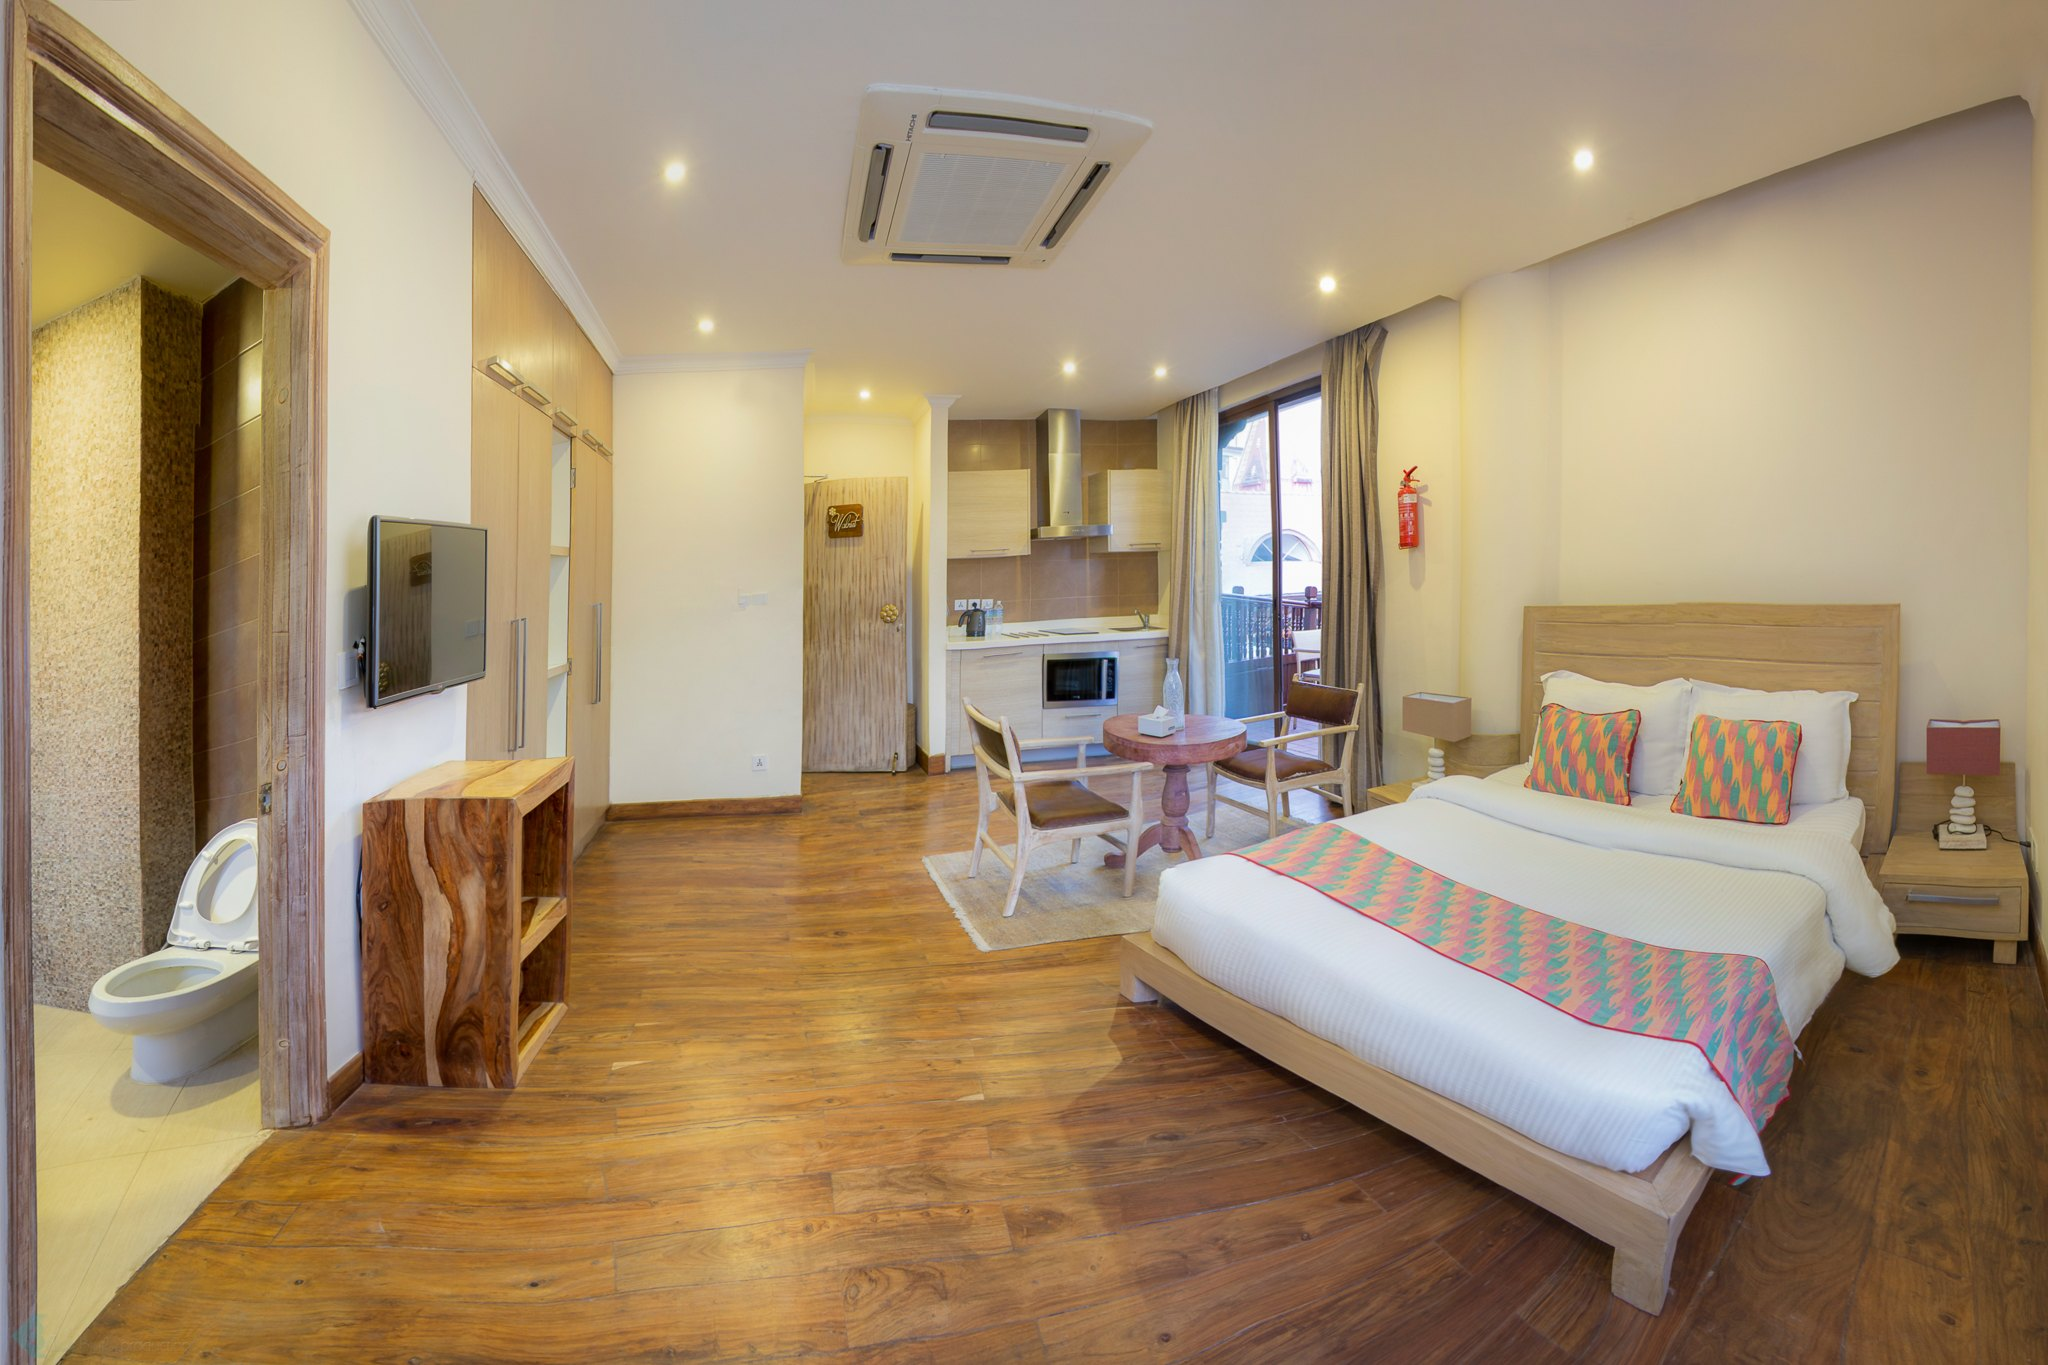 Tangalwood Boutique Hotel